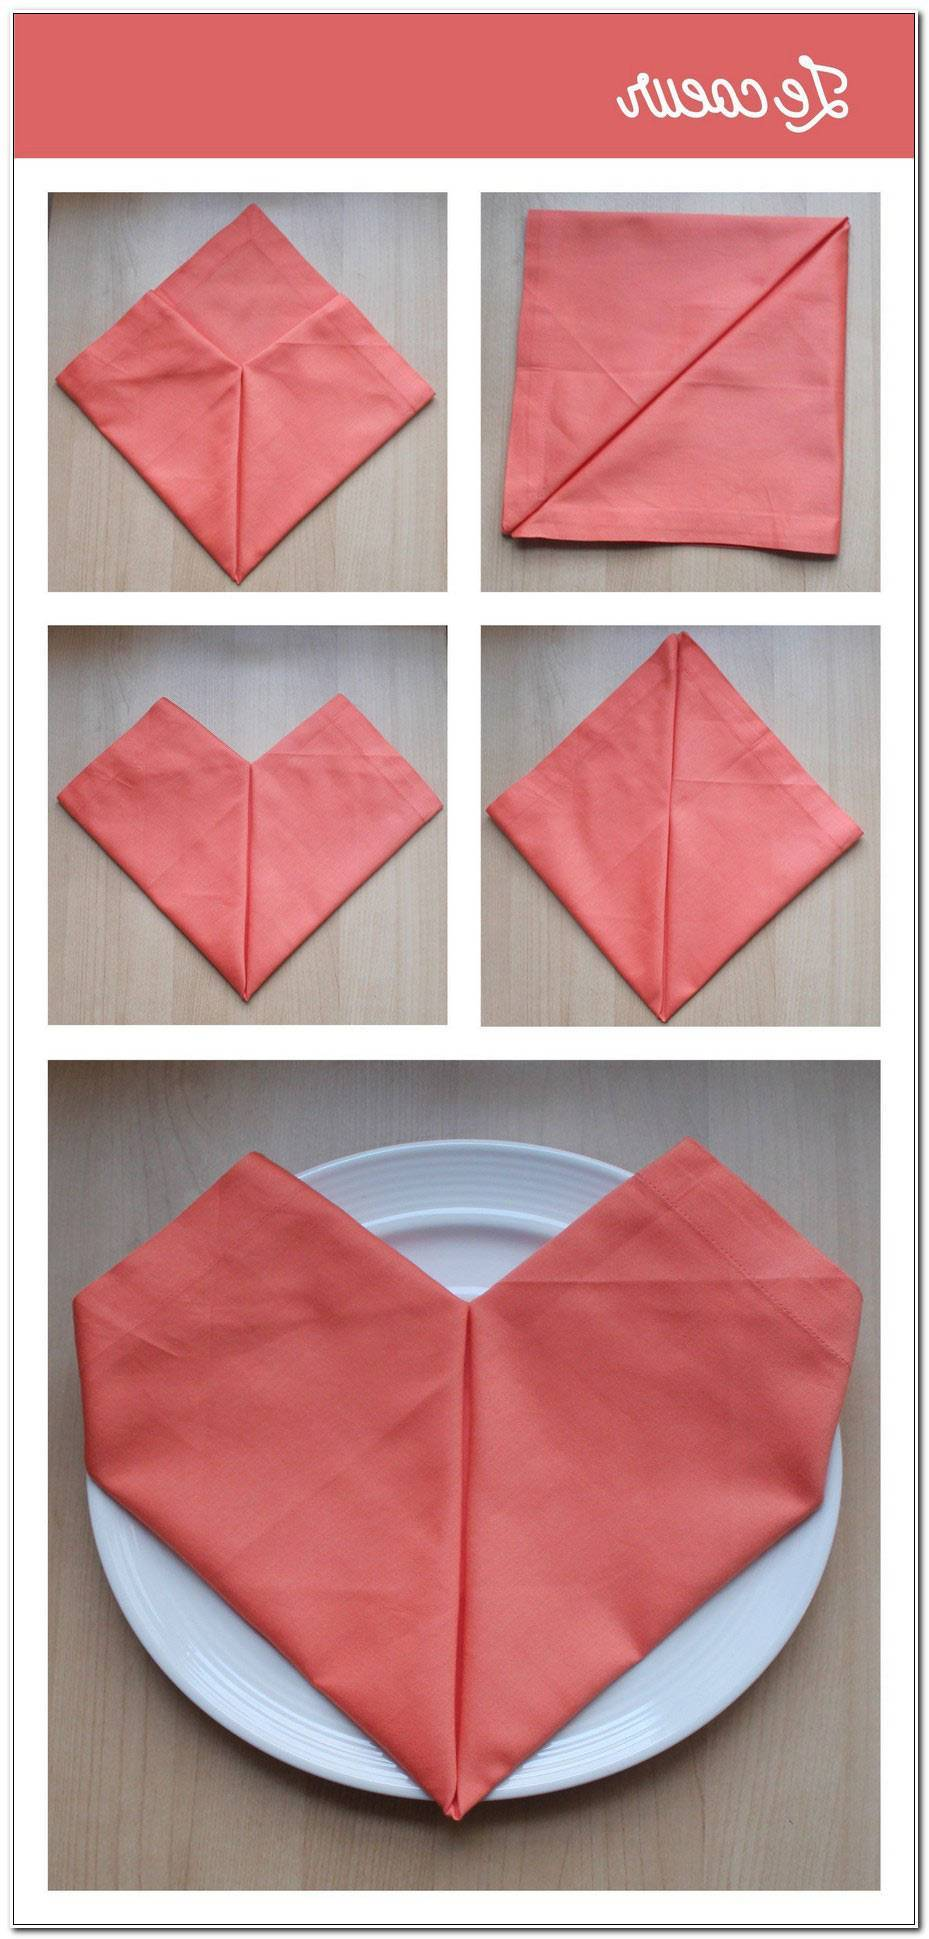 Serviette De Table Pliage